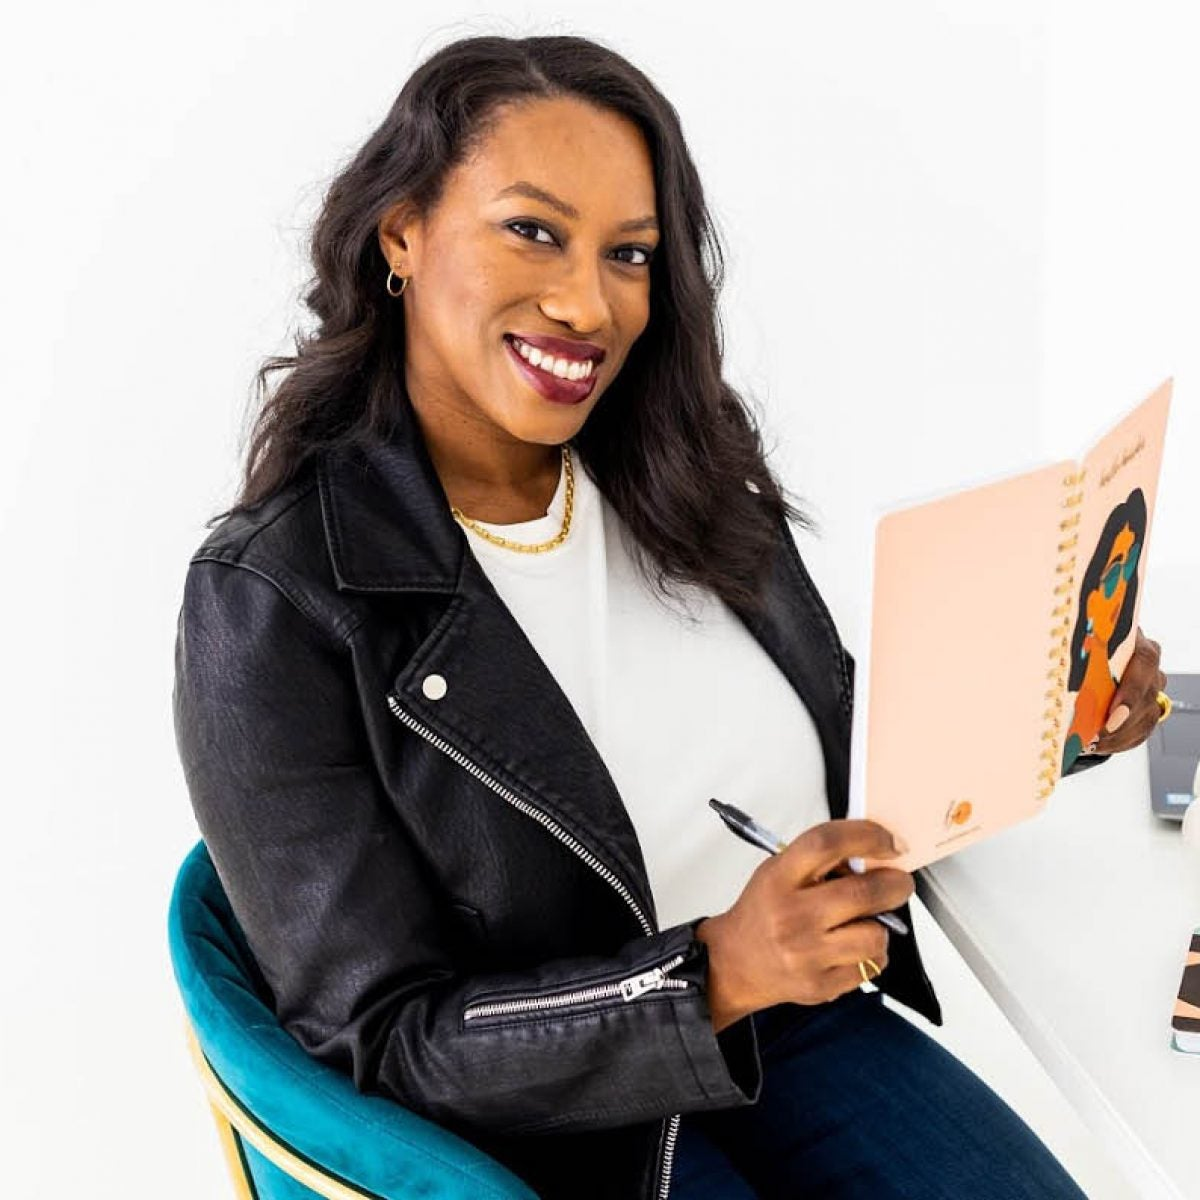 This Founder's Passion For Journaling Is Disrupting The Stationery Space